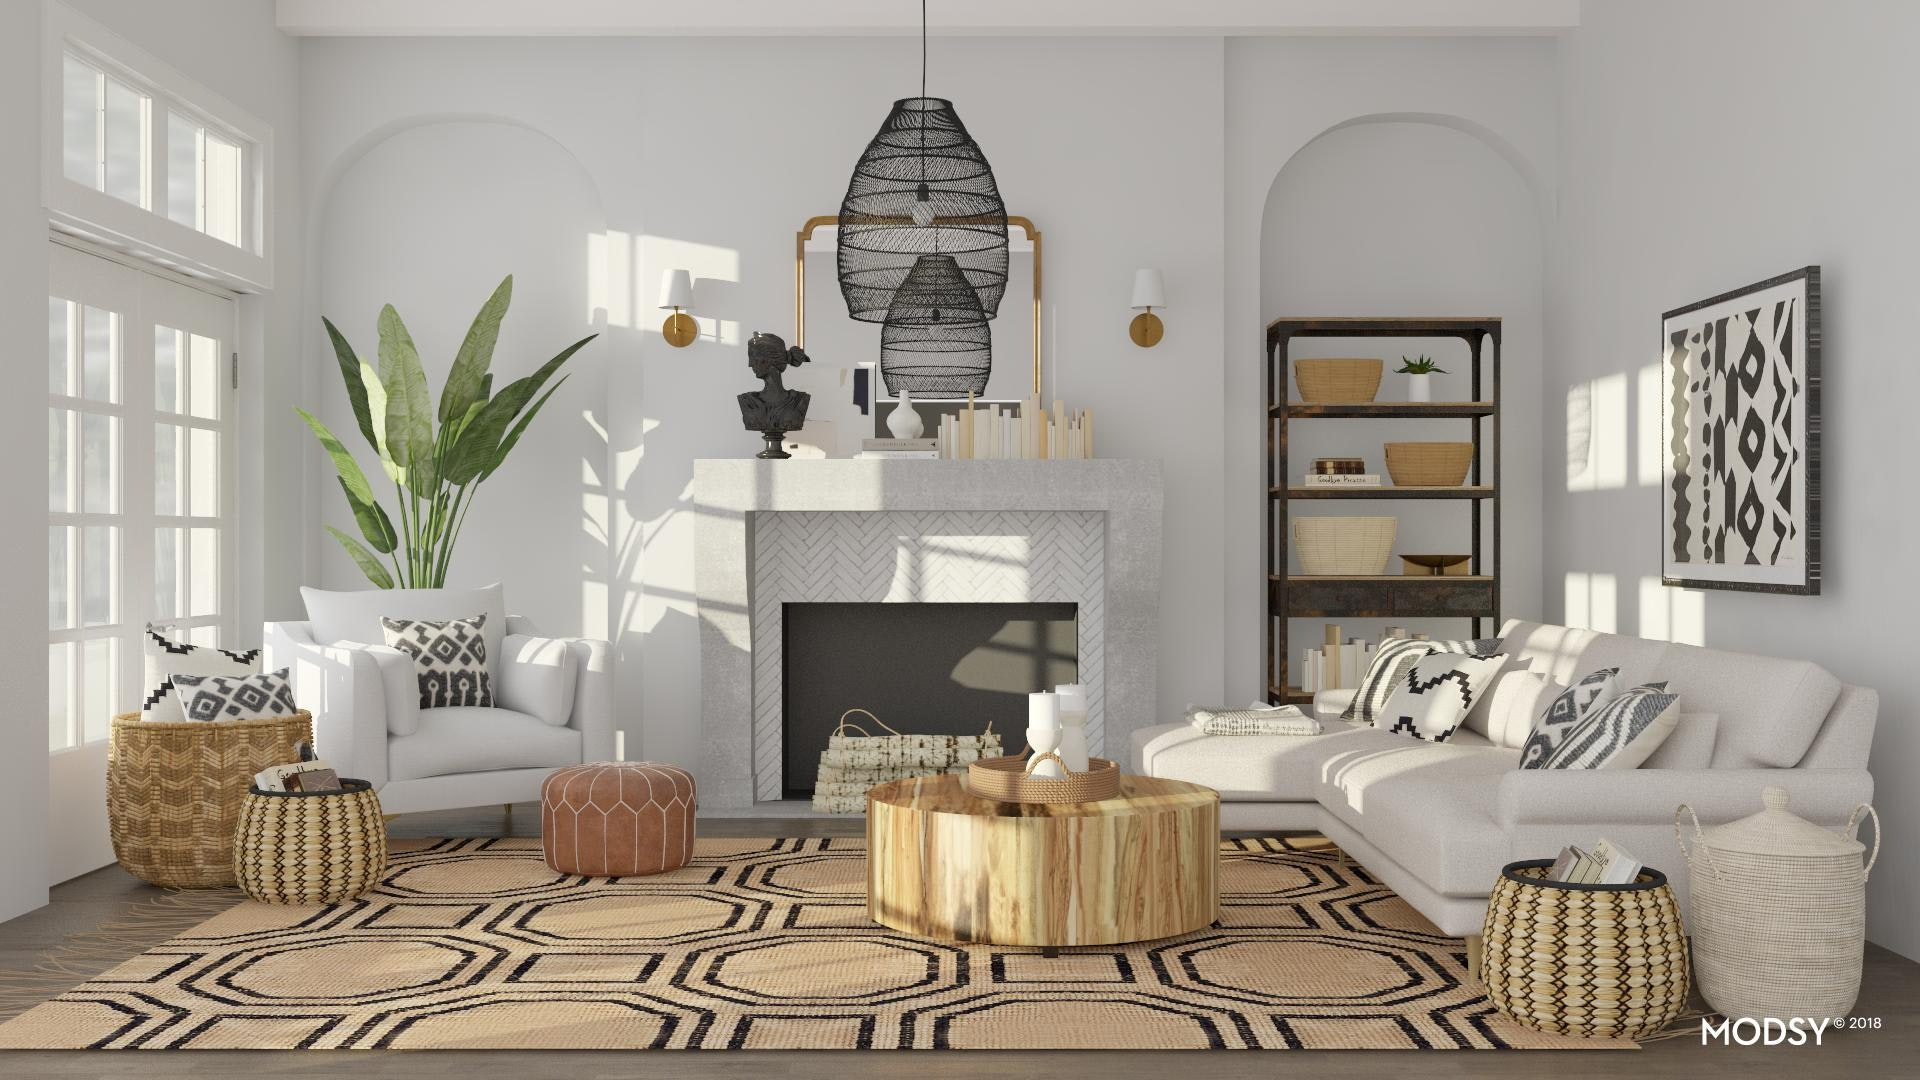 Woven Light Fixture Design Ideas And Styles From Modsy Designers